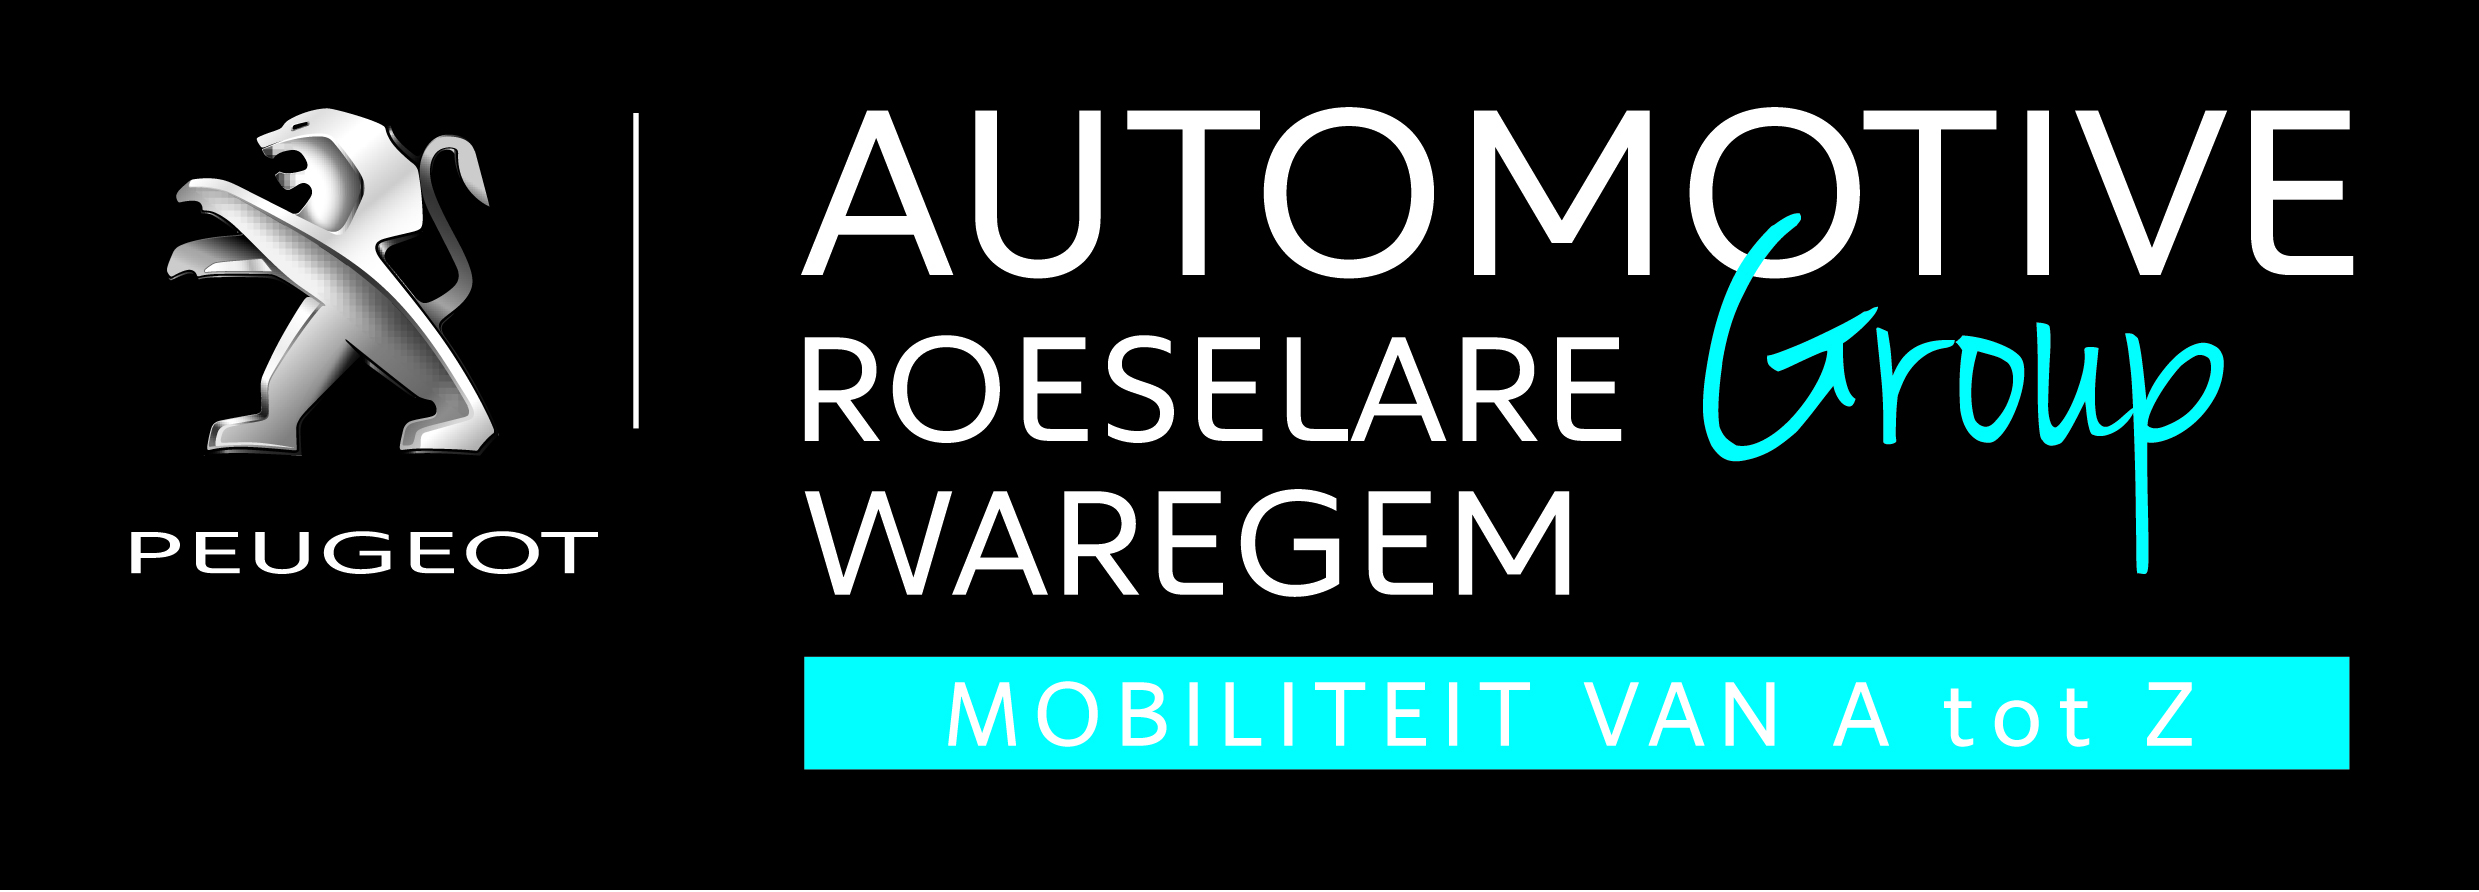 Automotive Group Waregem logo